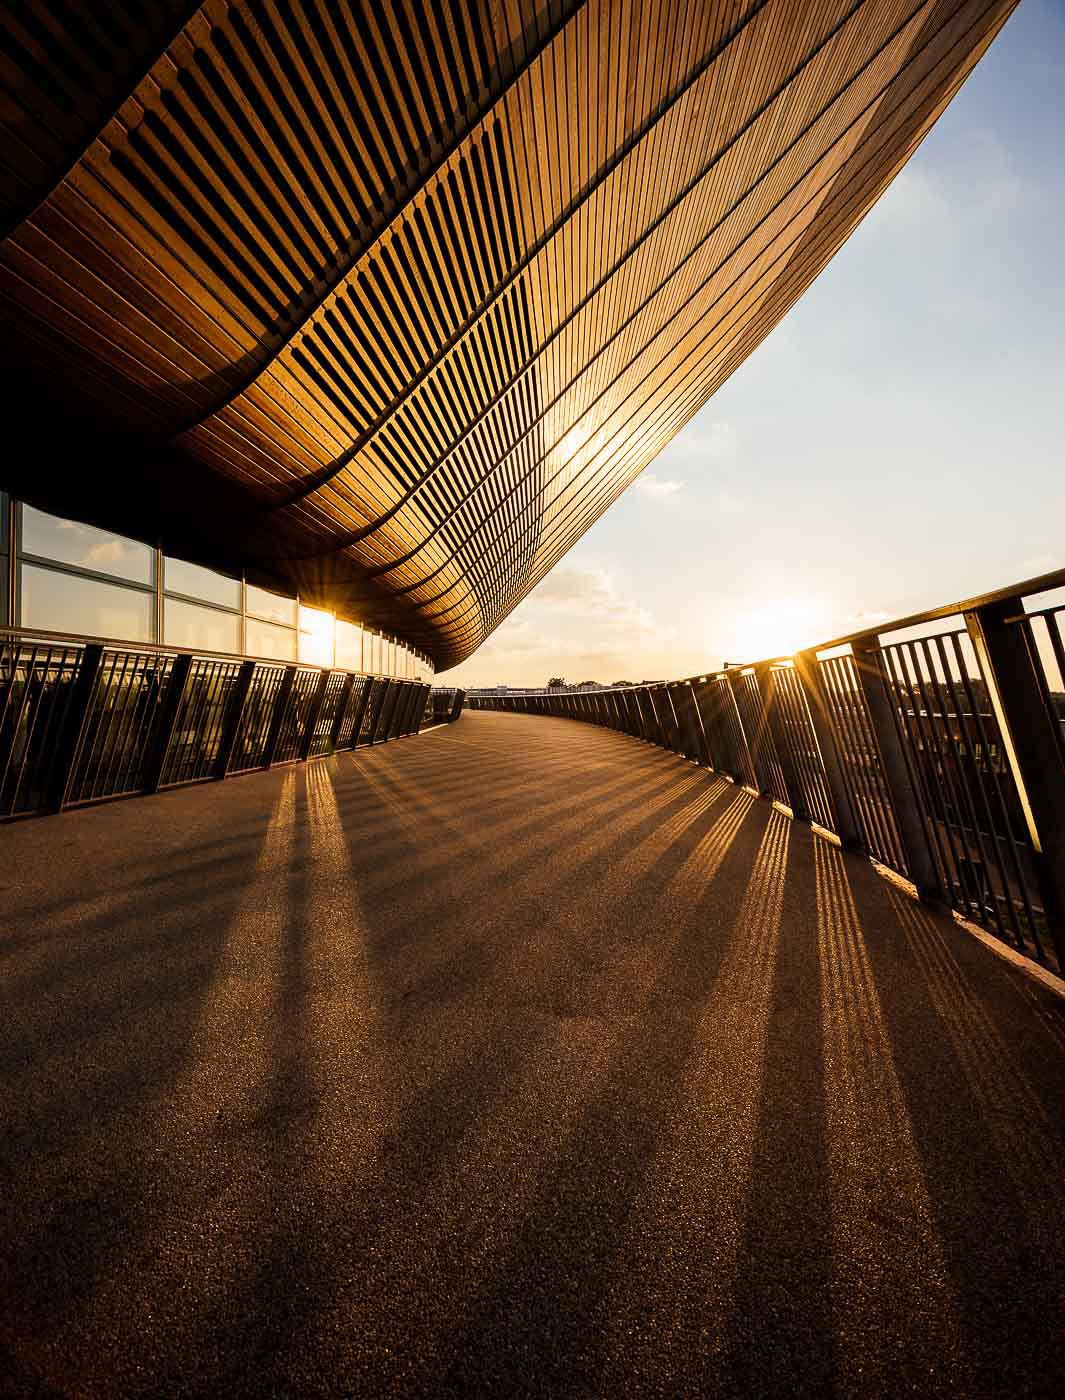 Exterior-Velodrome-Stratford-London-Modern-Architecture-Photographer-14